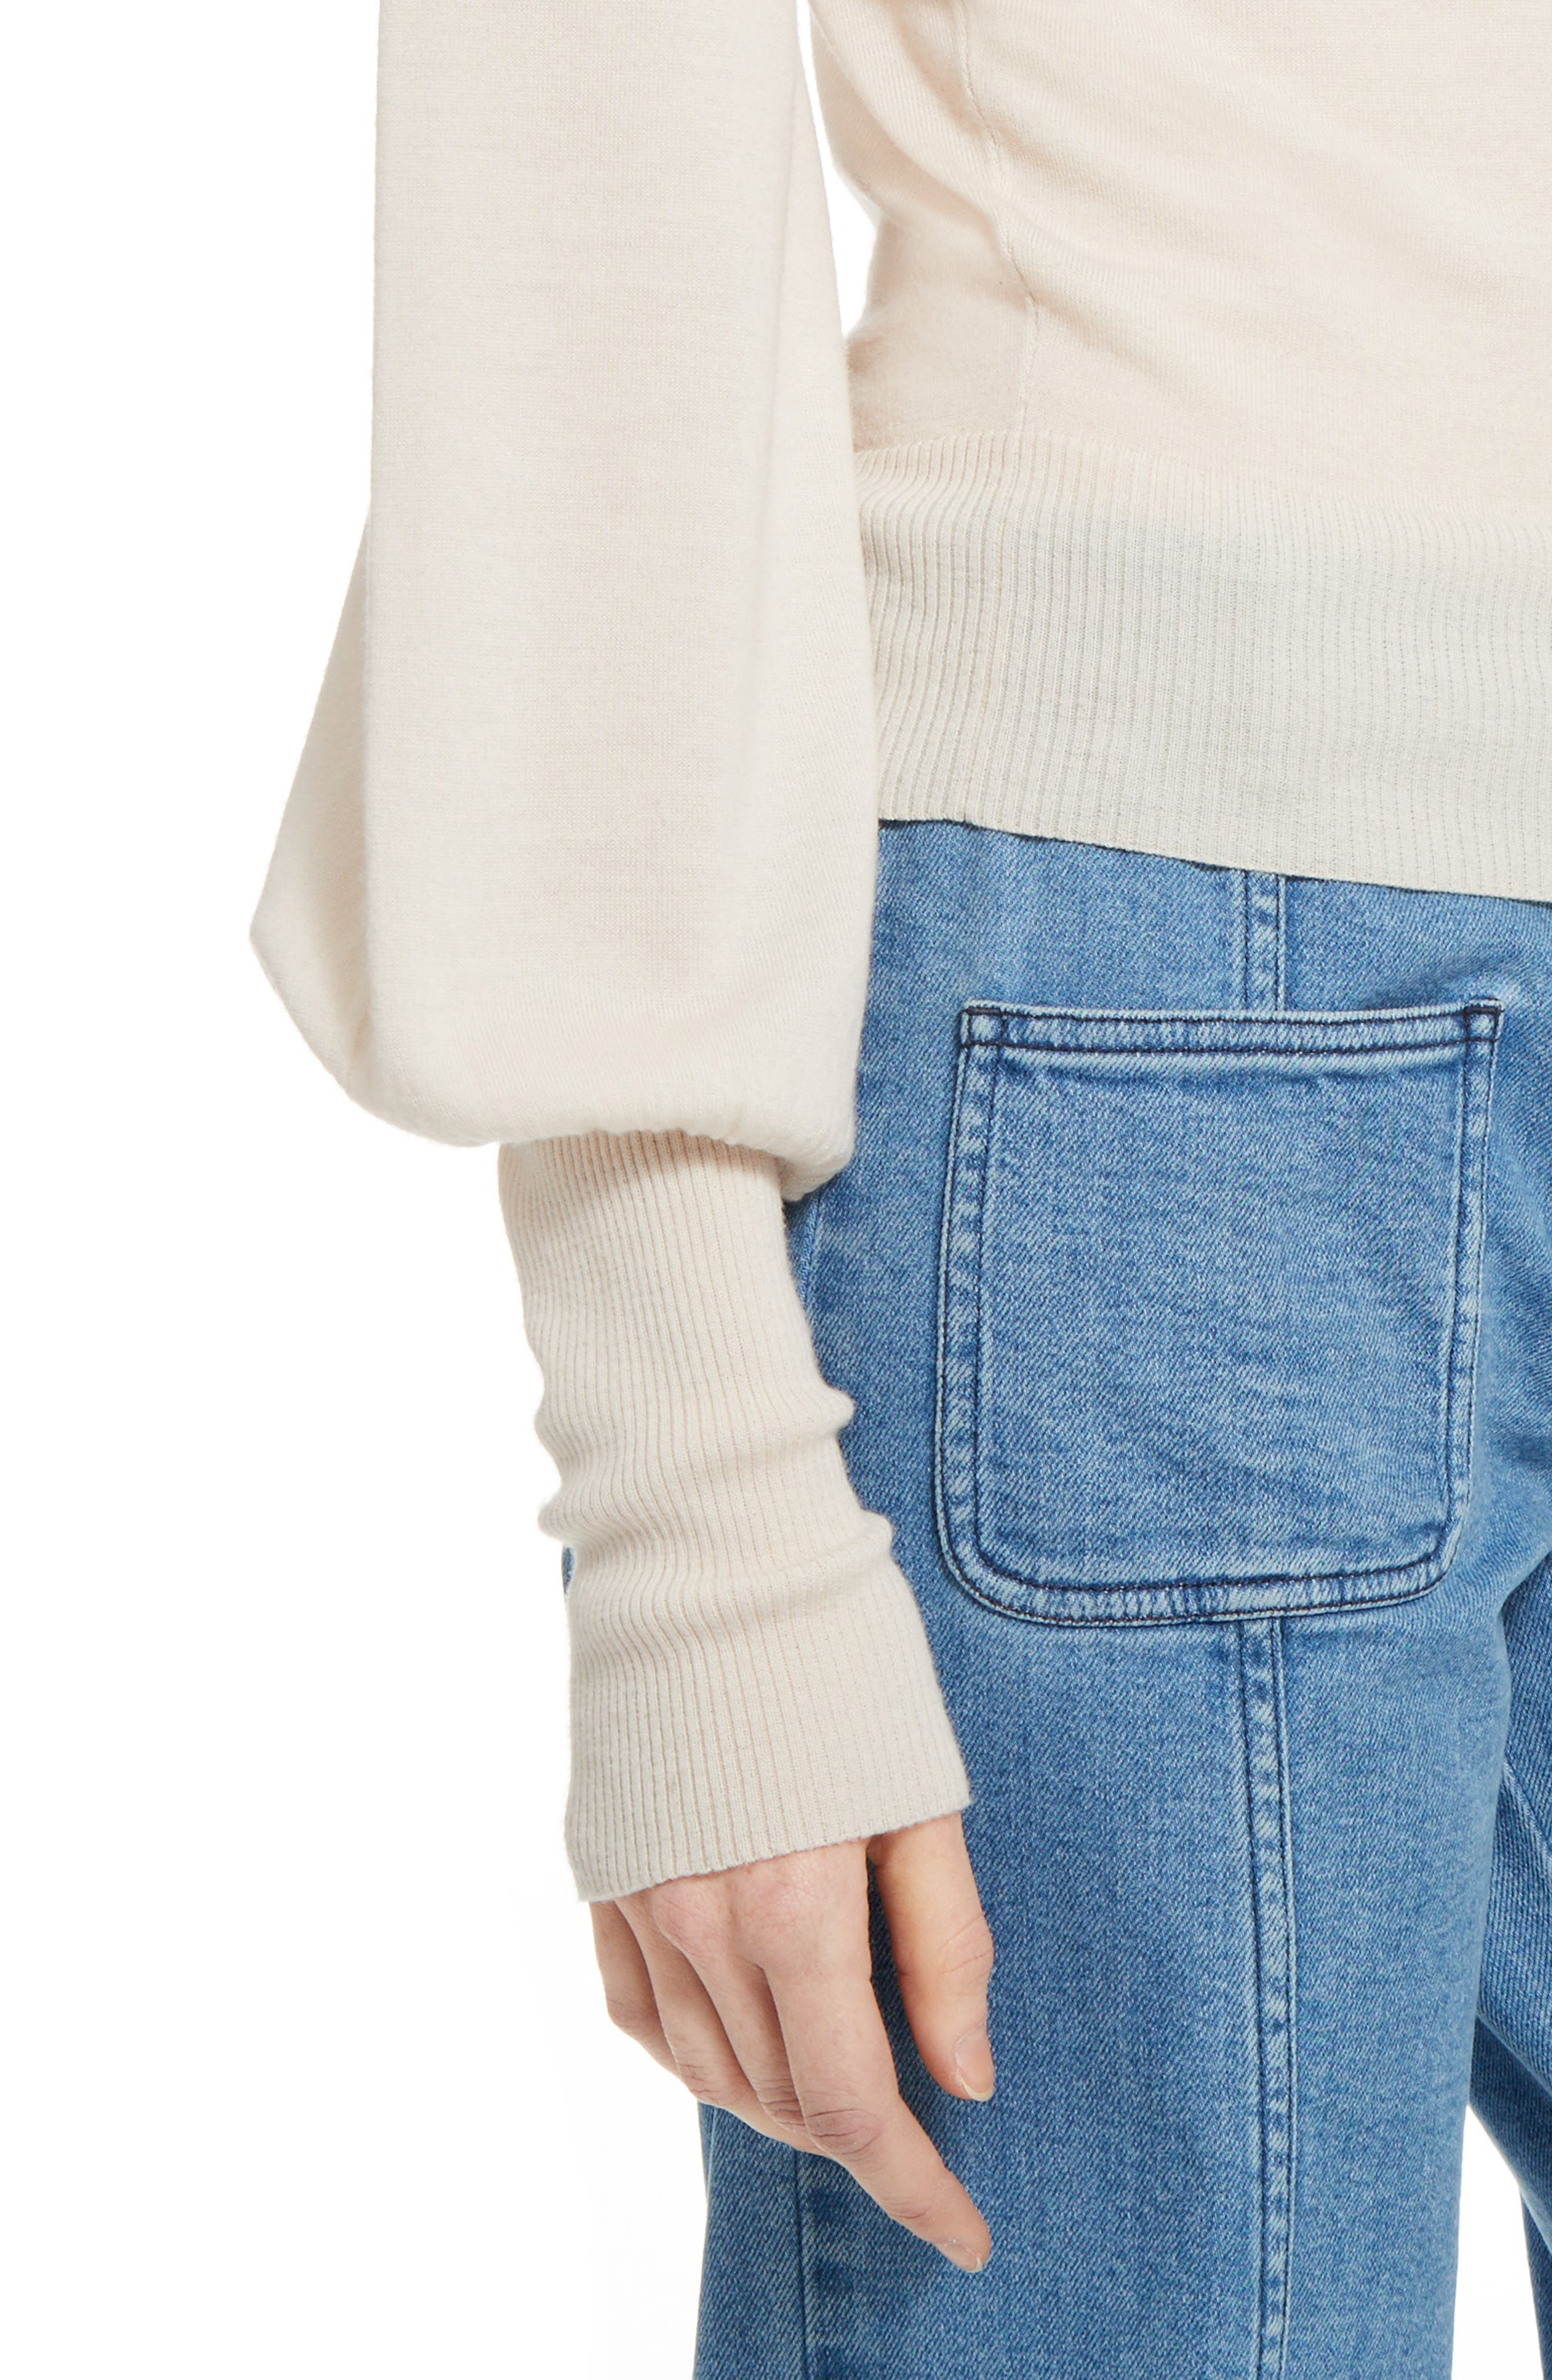 Wool Turtleneck Sweater,                             Alternate thumbnail 8, color,                             Off White